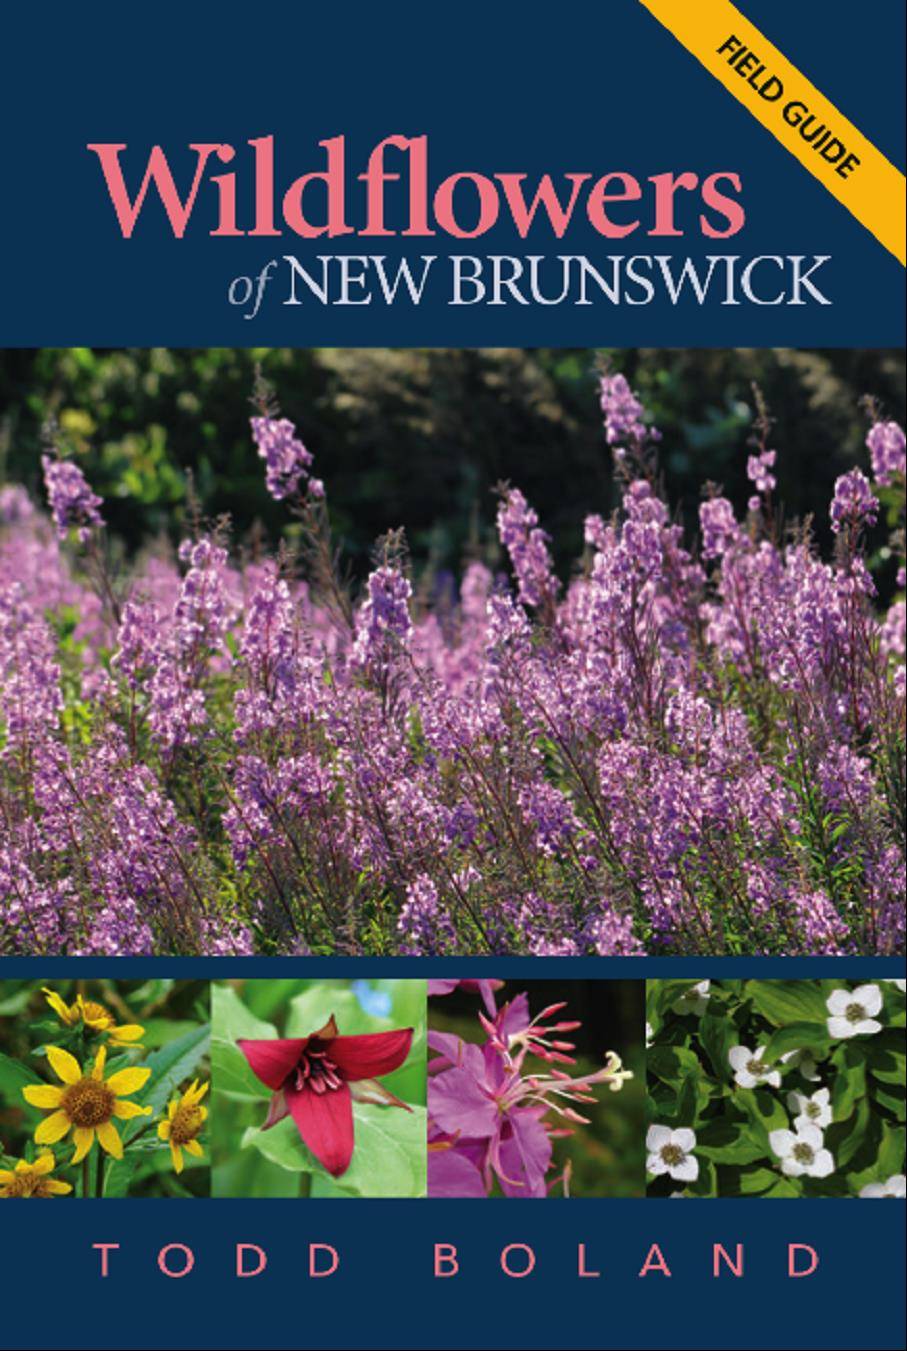 Wildflowers of New Brunswick